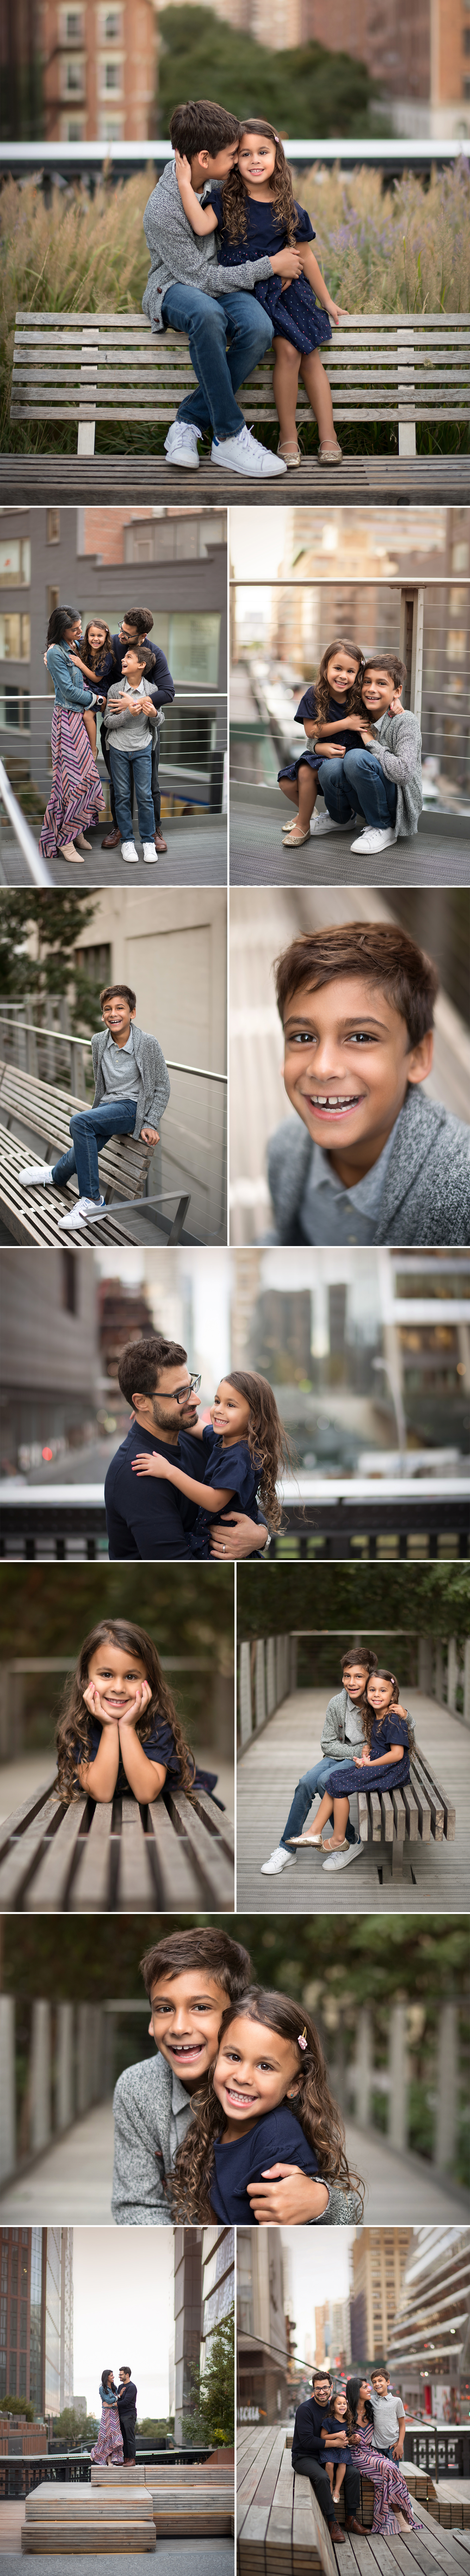 high line family photo shoot